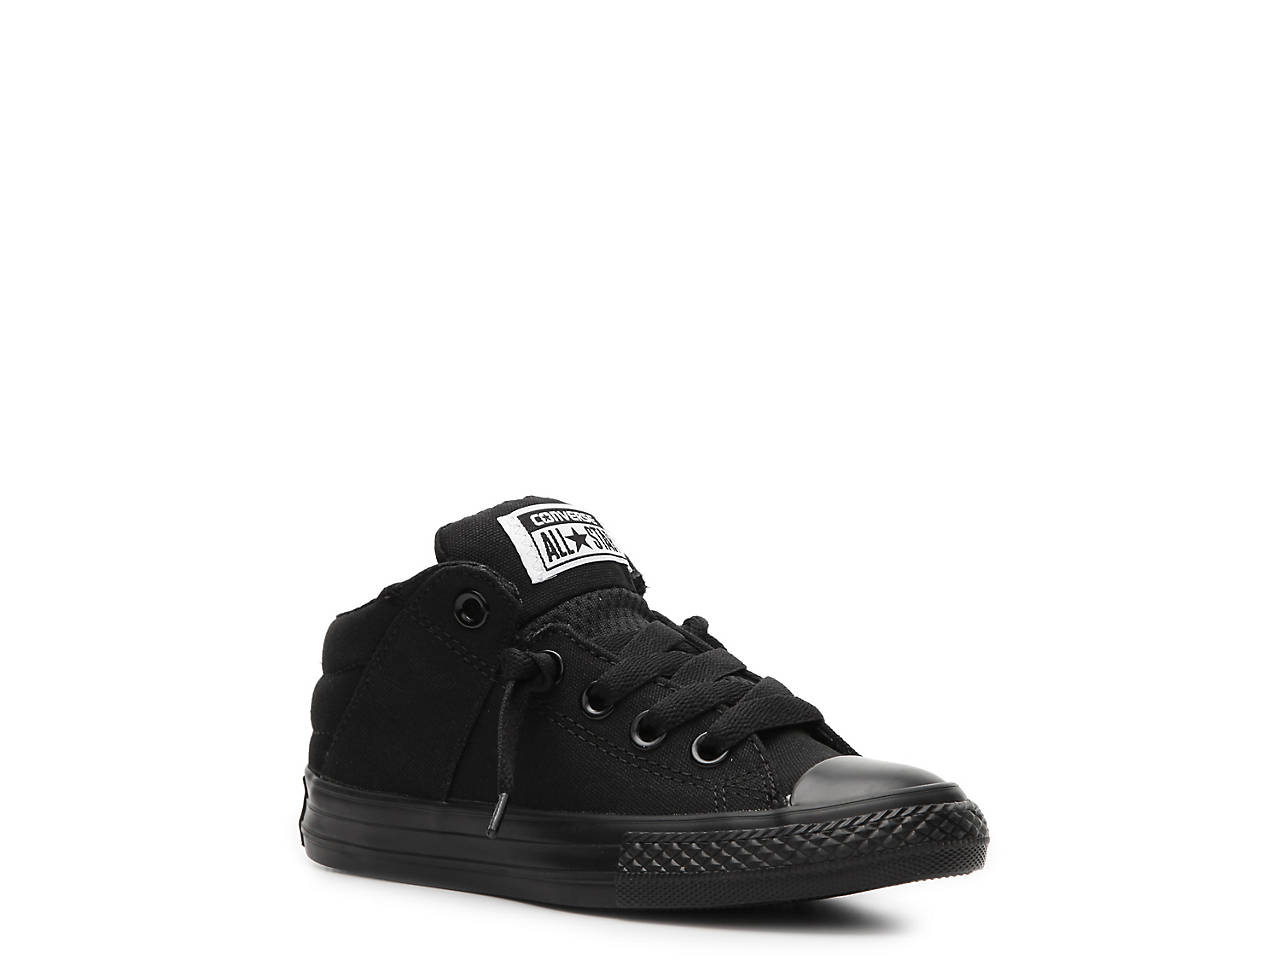 7f6ebc6df5db Converse Chuck Taylor All Star Axel Toddler   Youth Mid-Top Sneaker ...